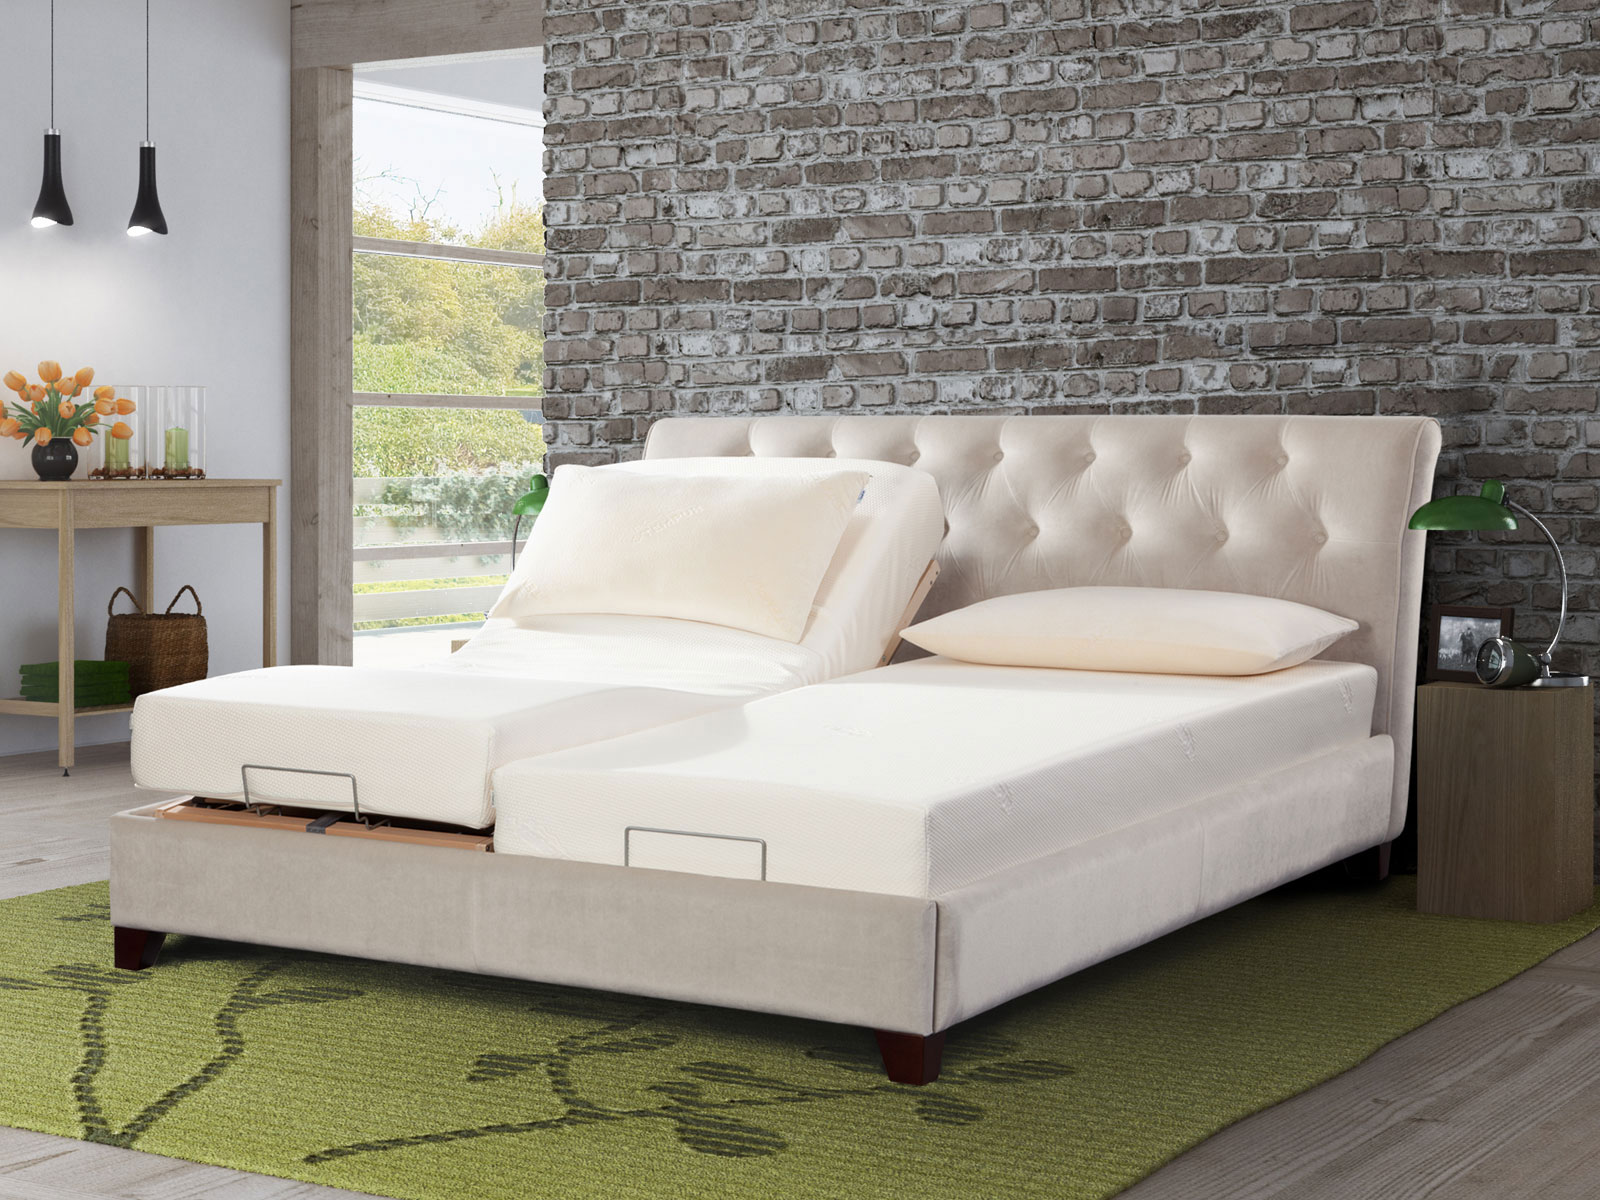 Macys Mattress Topper Adjustable Tempur Pedic Bed. New Queen Tempurpedic ...